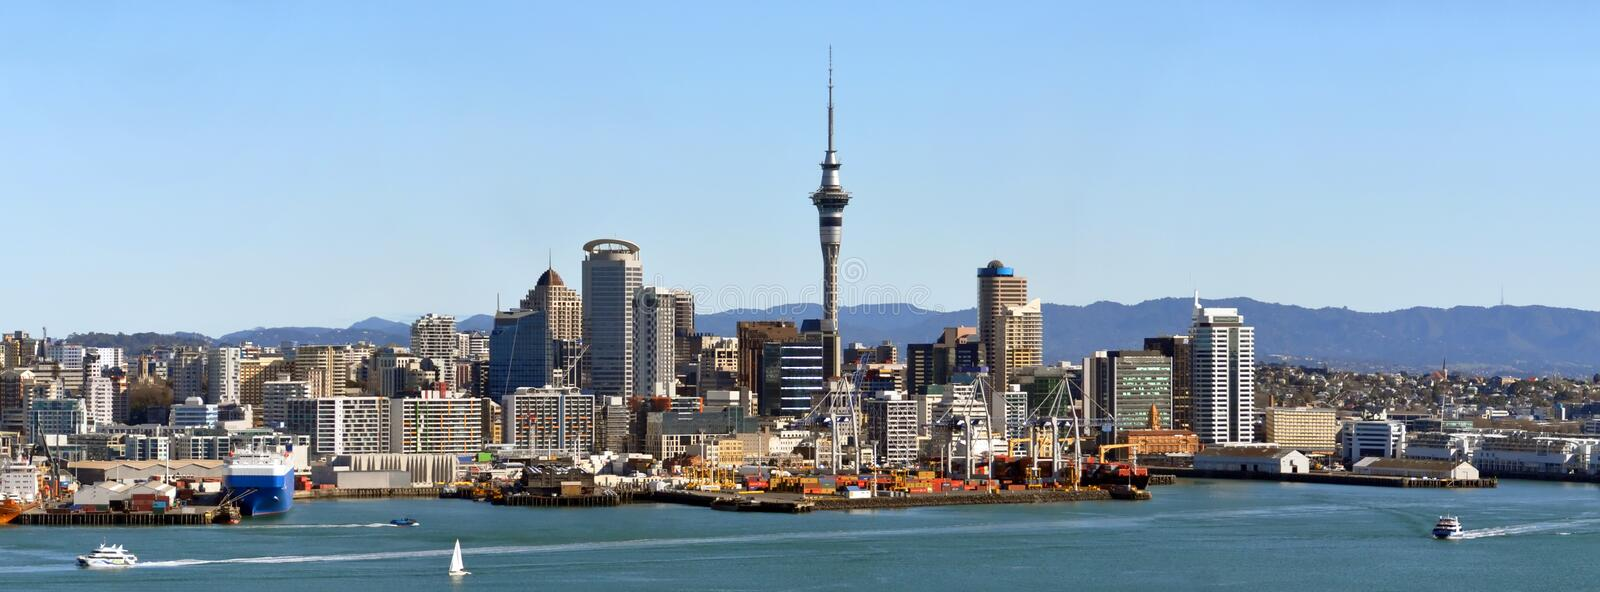 Panorama de ville d'Auckland, Nouvelle Zélande photo stock